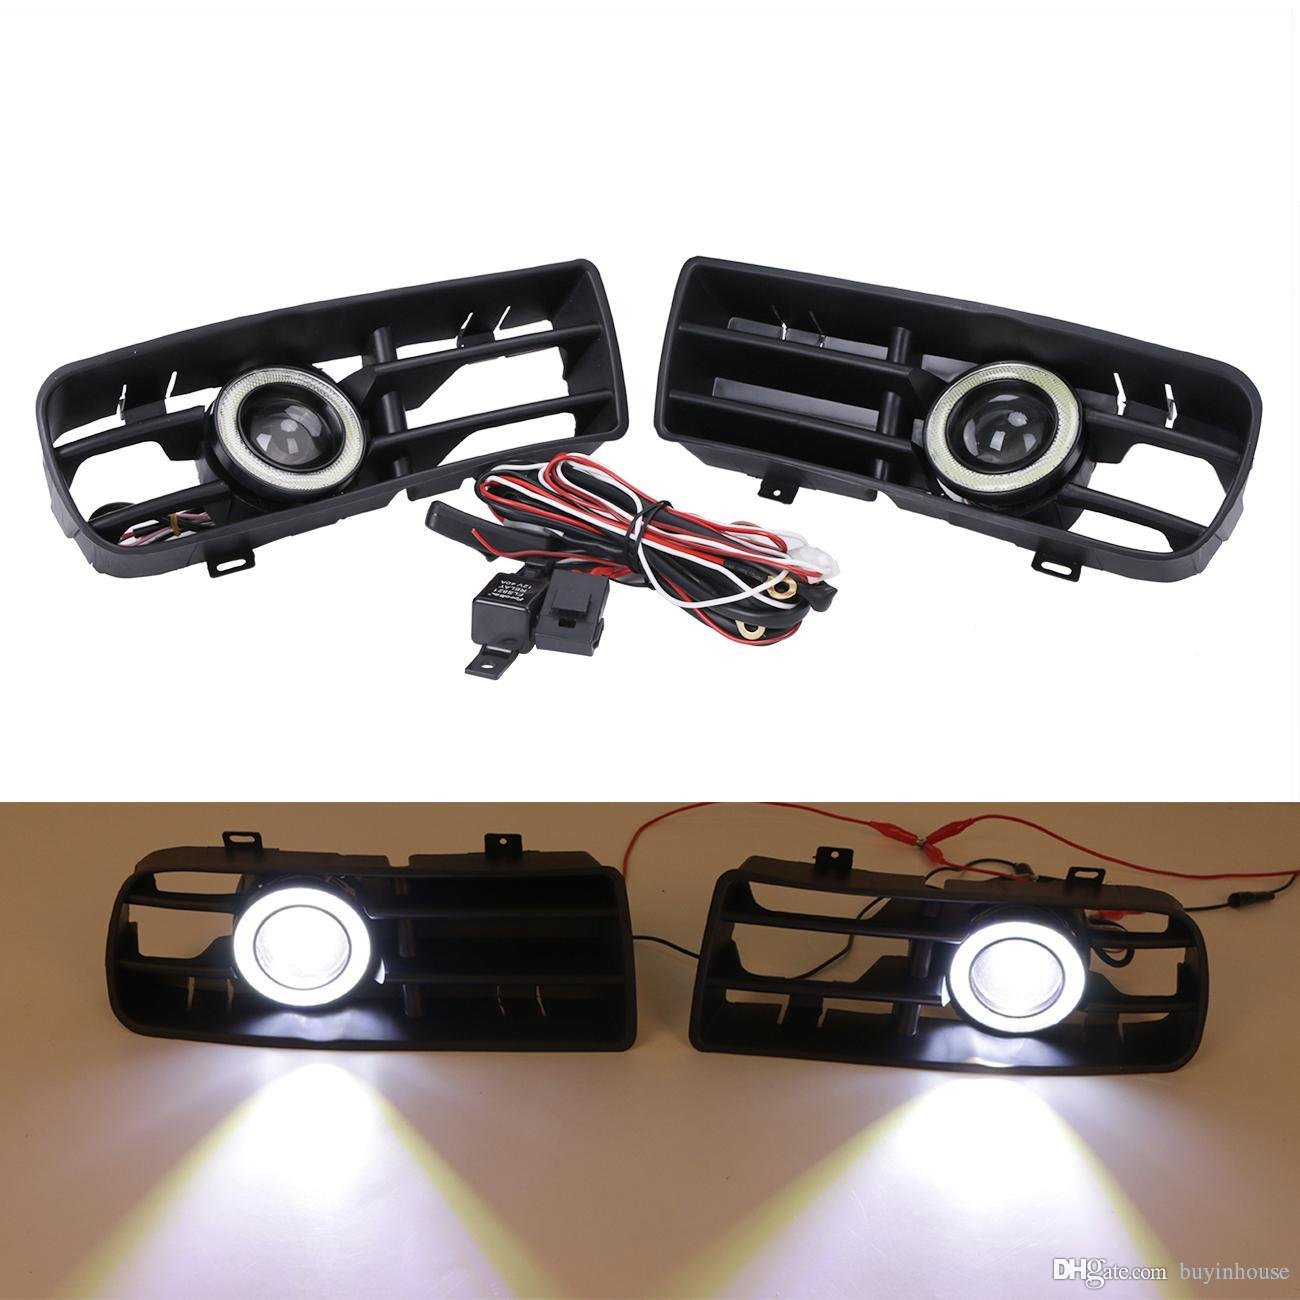 2x led fog lights angel eyes front bumper 2017 2x led fog lights angel eyes front bumper grille grill cover Fog Light Wiring Diagram at fashall.co